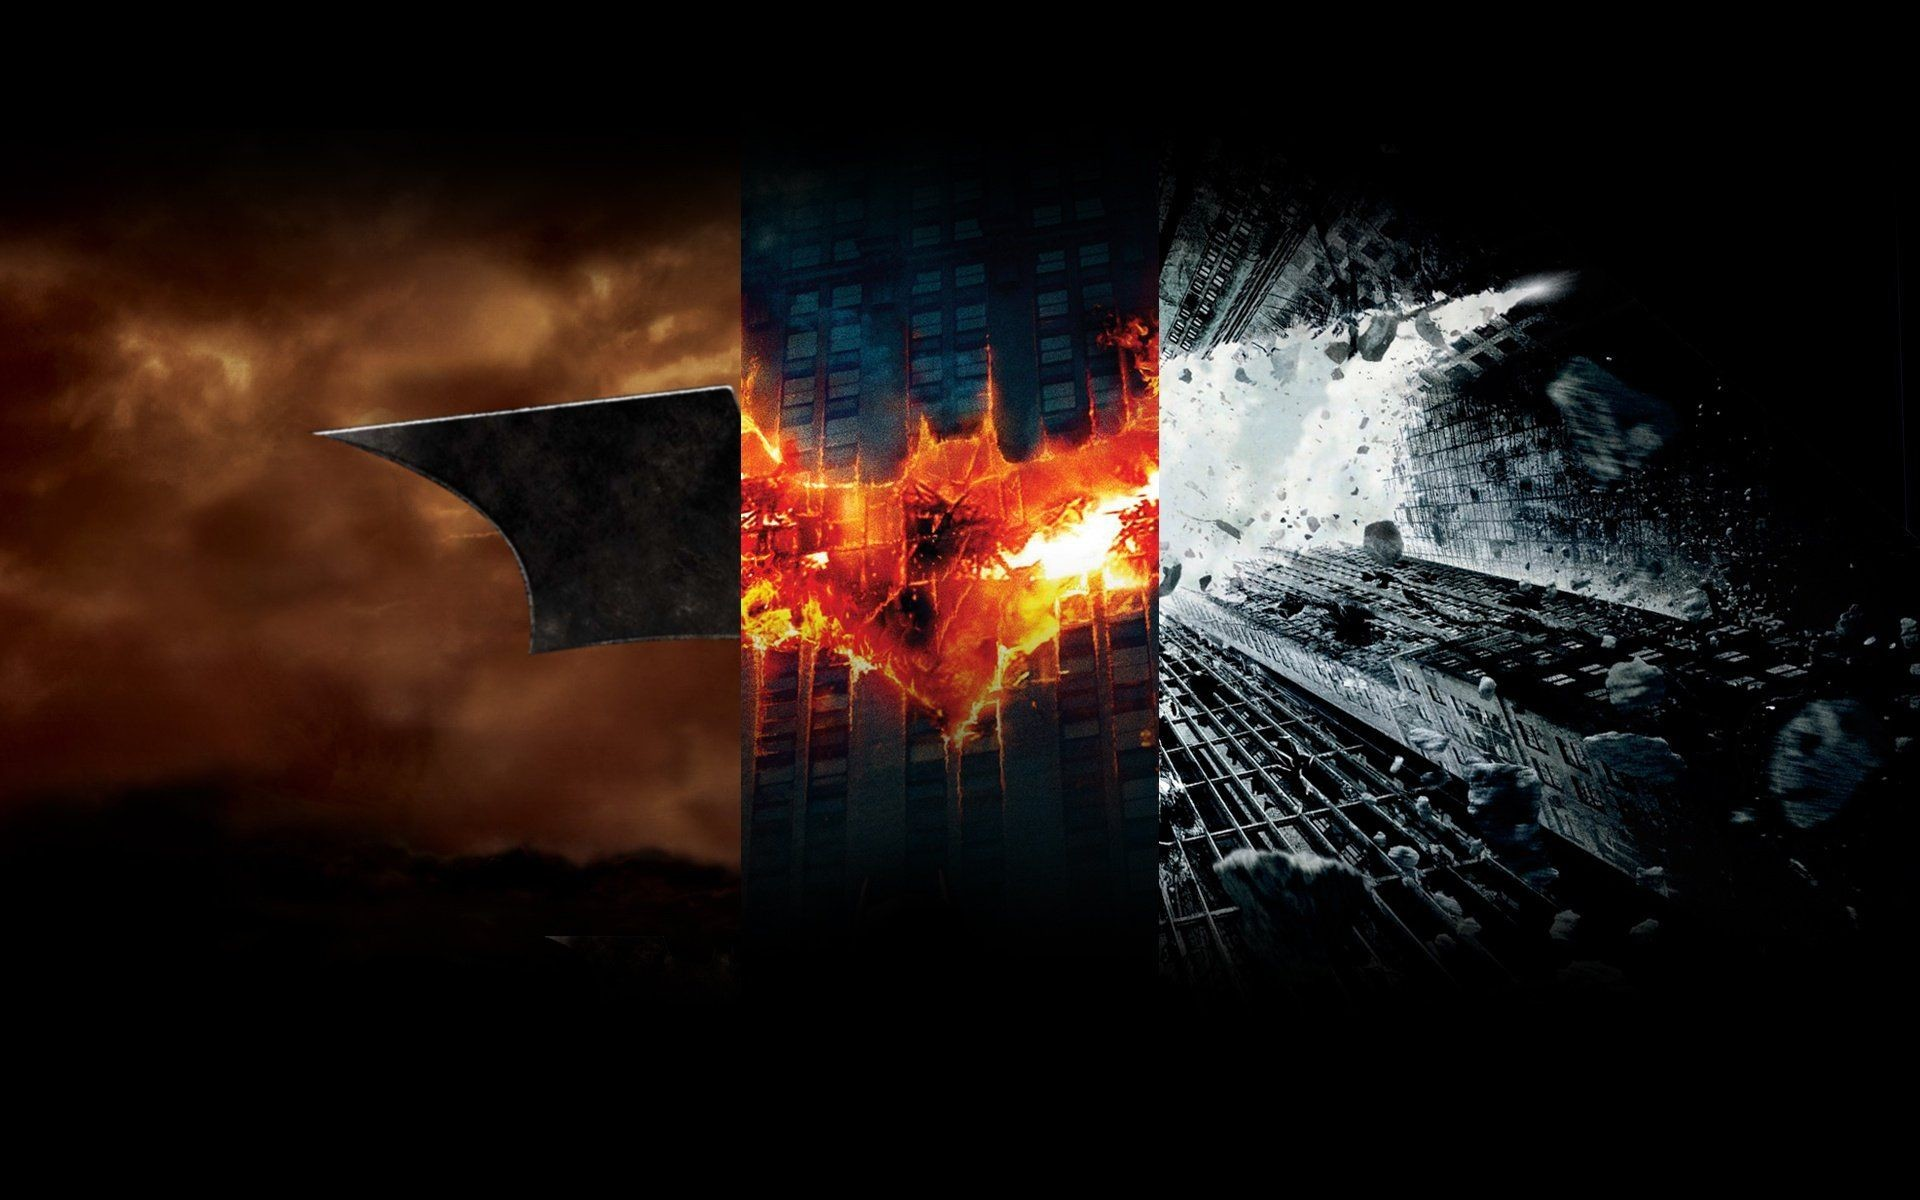 Batman Batch From Movies Wallpaper, Hd Image, Picture